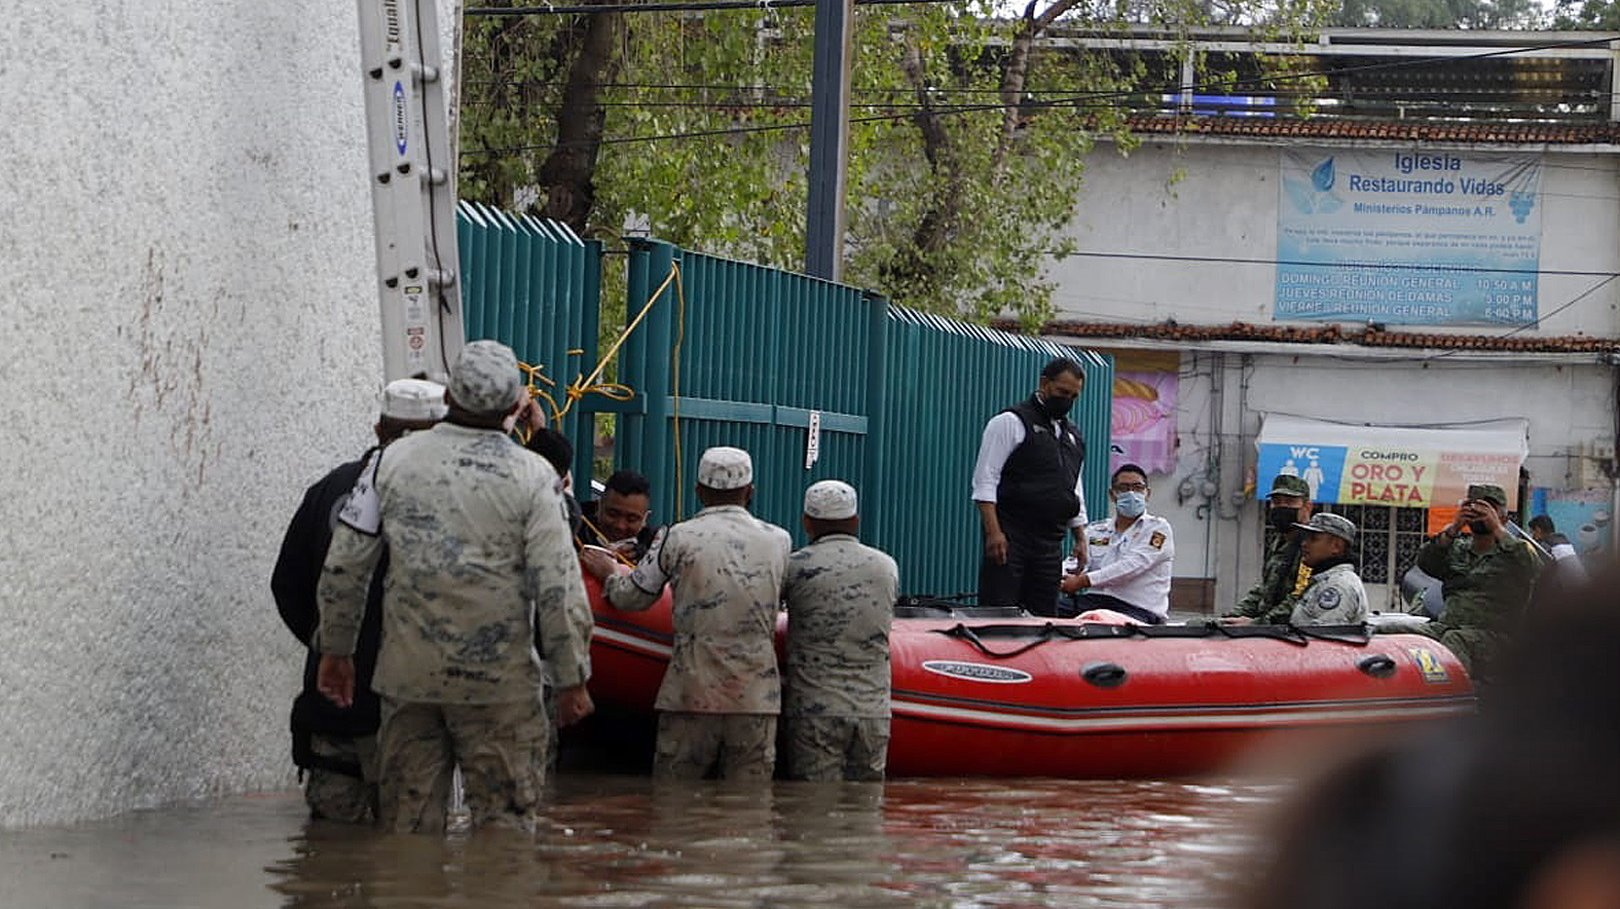 epa09454369 Members of the Fire Department and the Mexican Army help patients from a hospital of the Mexican Social Security Institute (IMSS) to move after being affected by heavy rains, in the city of Tula, Hidalgo state, Mexico, 07 September 2021. At least 17 people died from flooding after heavy rains at a public hospital in Tula, in central Mexico, from where dozens of patients have been evacuated with the support of federal forces.  EPA/David Martinez Pelcastre